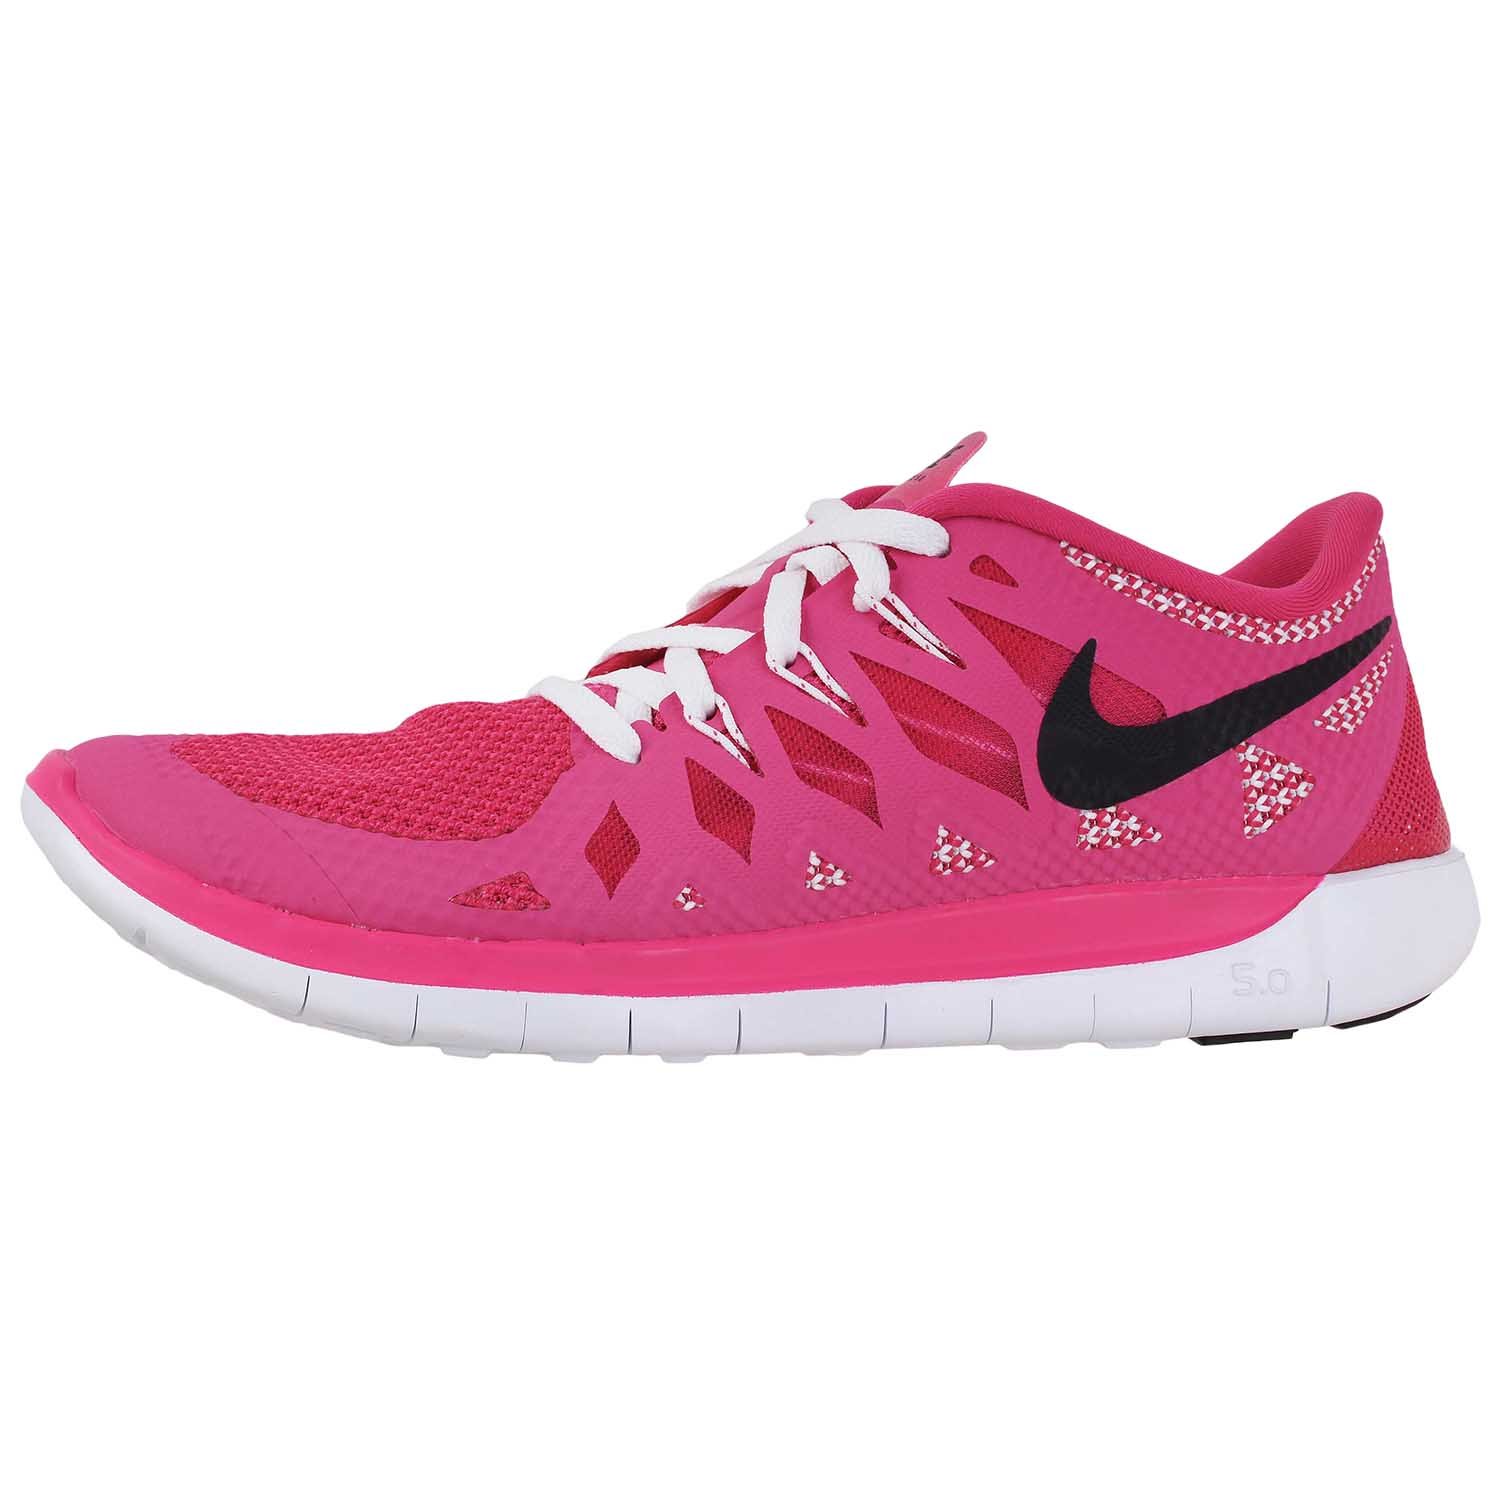 60e4ad2b5bfd5 Details about Nike Youth s Kids Girls Free 5.0 GS Running Sneakers Shoes  644446-602 Pink sz 7Y